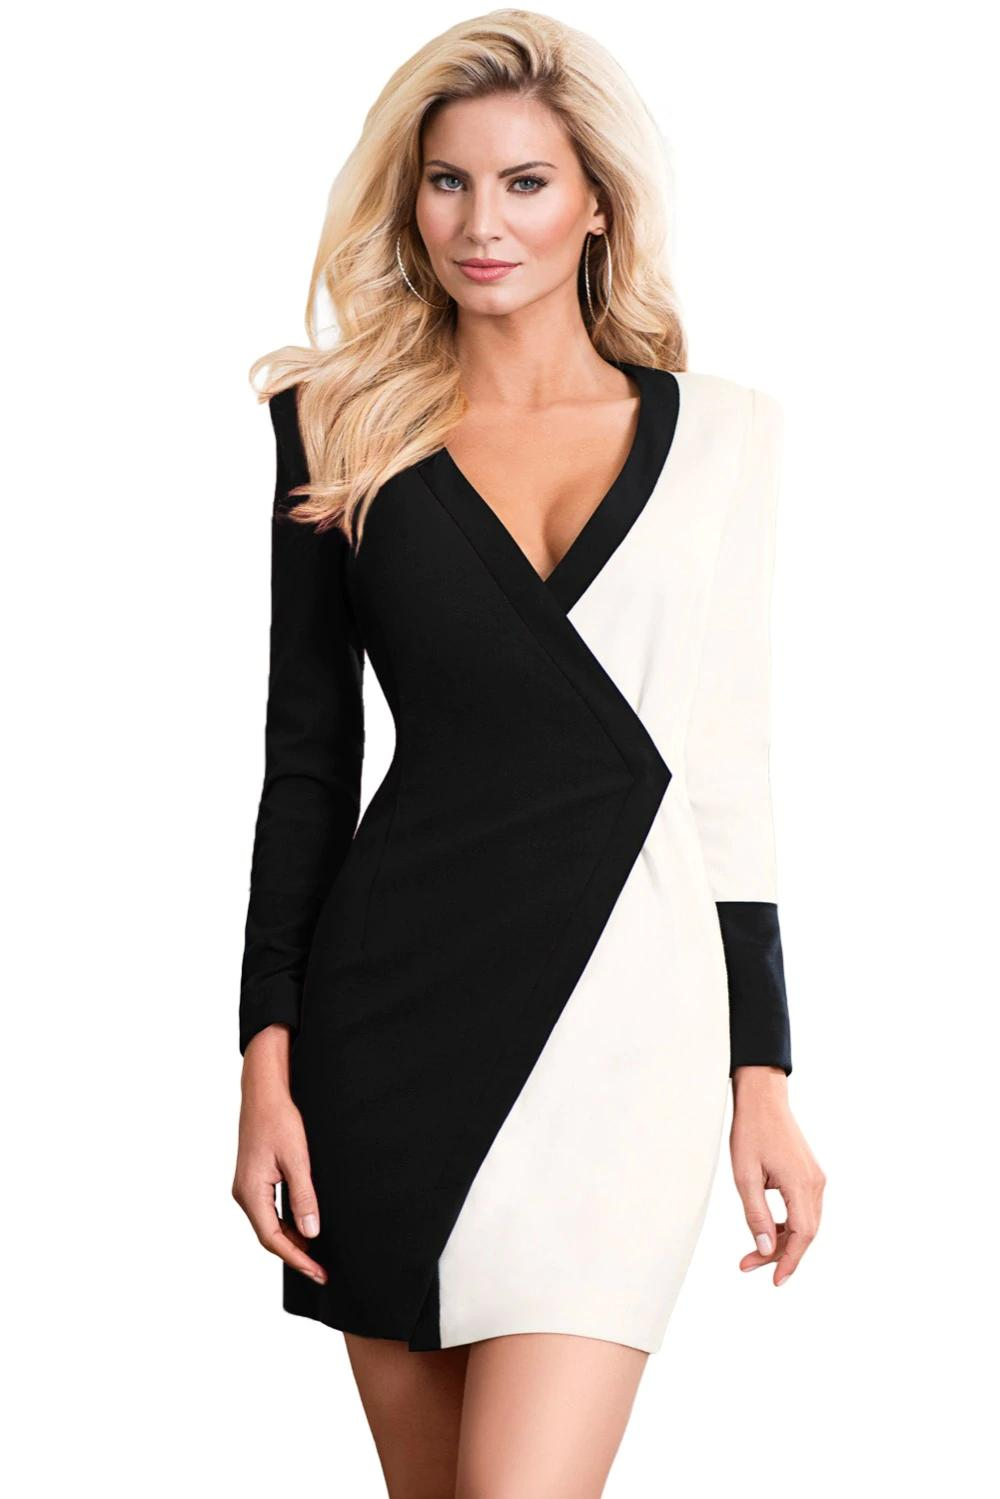 bb34dea77a57 New Long Sleeve 2018 Sexy Autumn V Neck Black White Color Block Faux Wrap  Mini Party Bodycon Dress Vestido Mujer Lc220478 Red Carpet Dresses Black  Prom ...